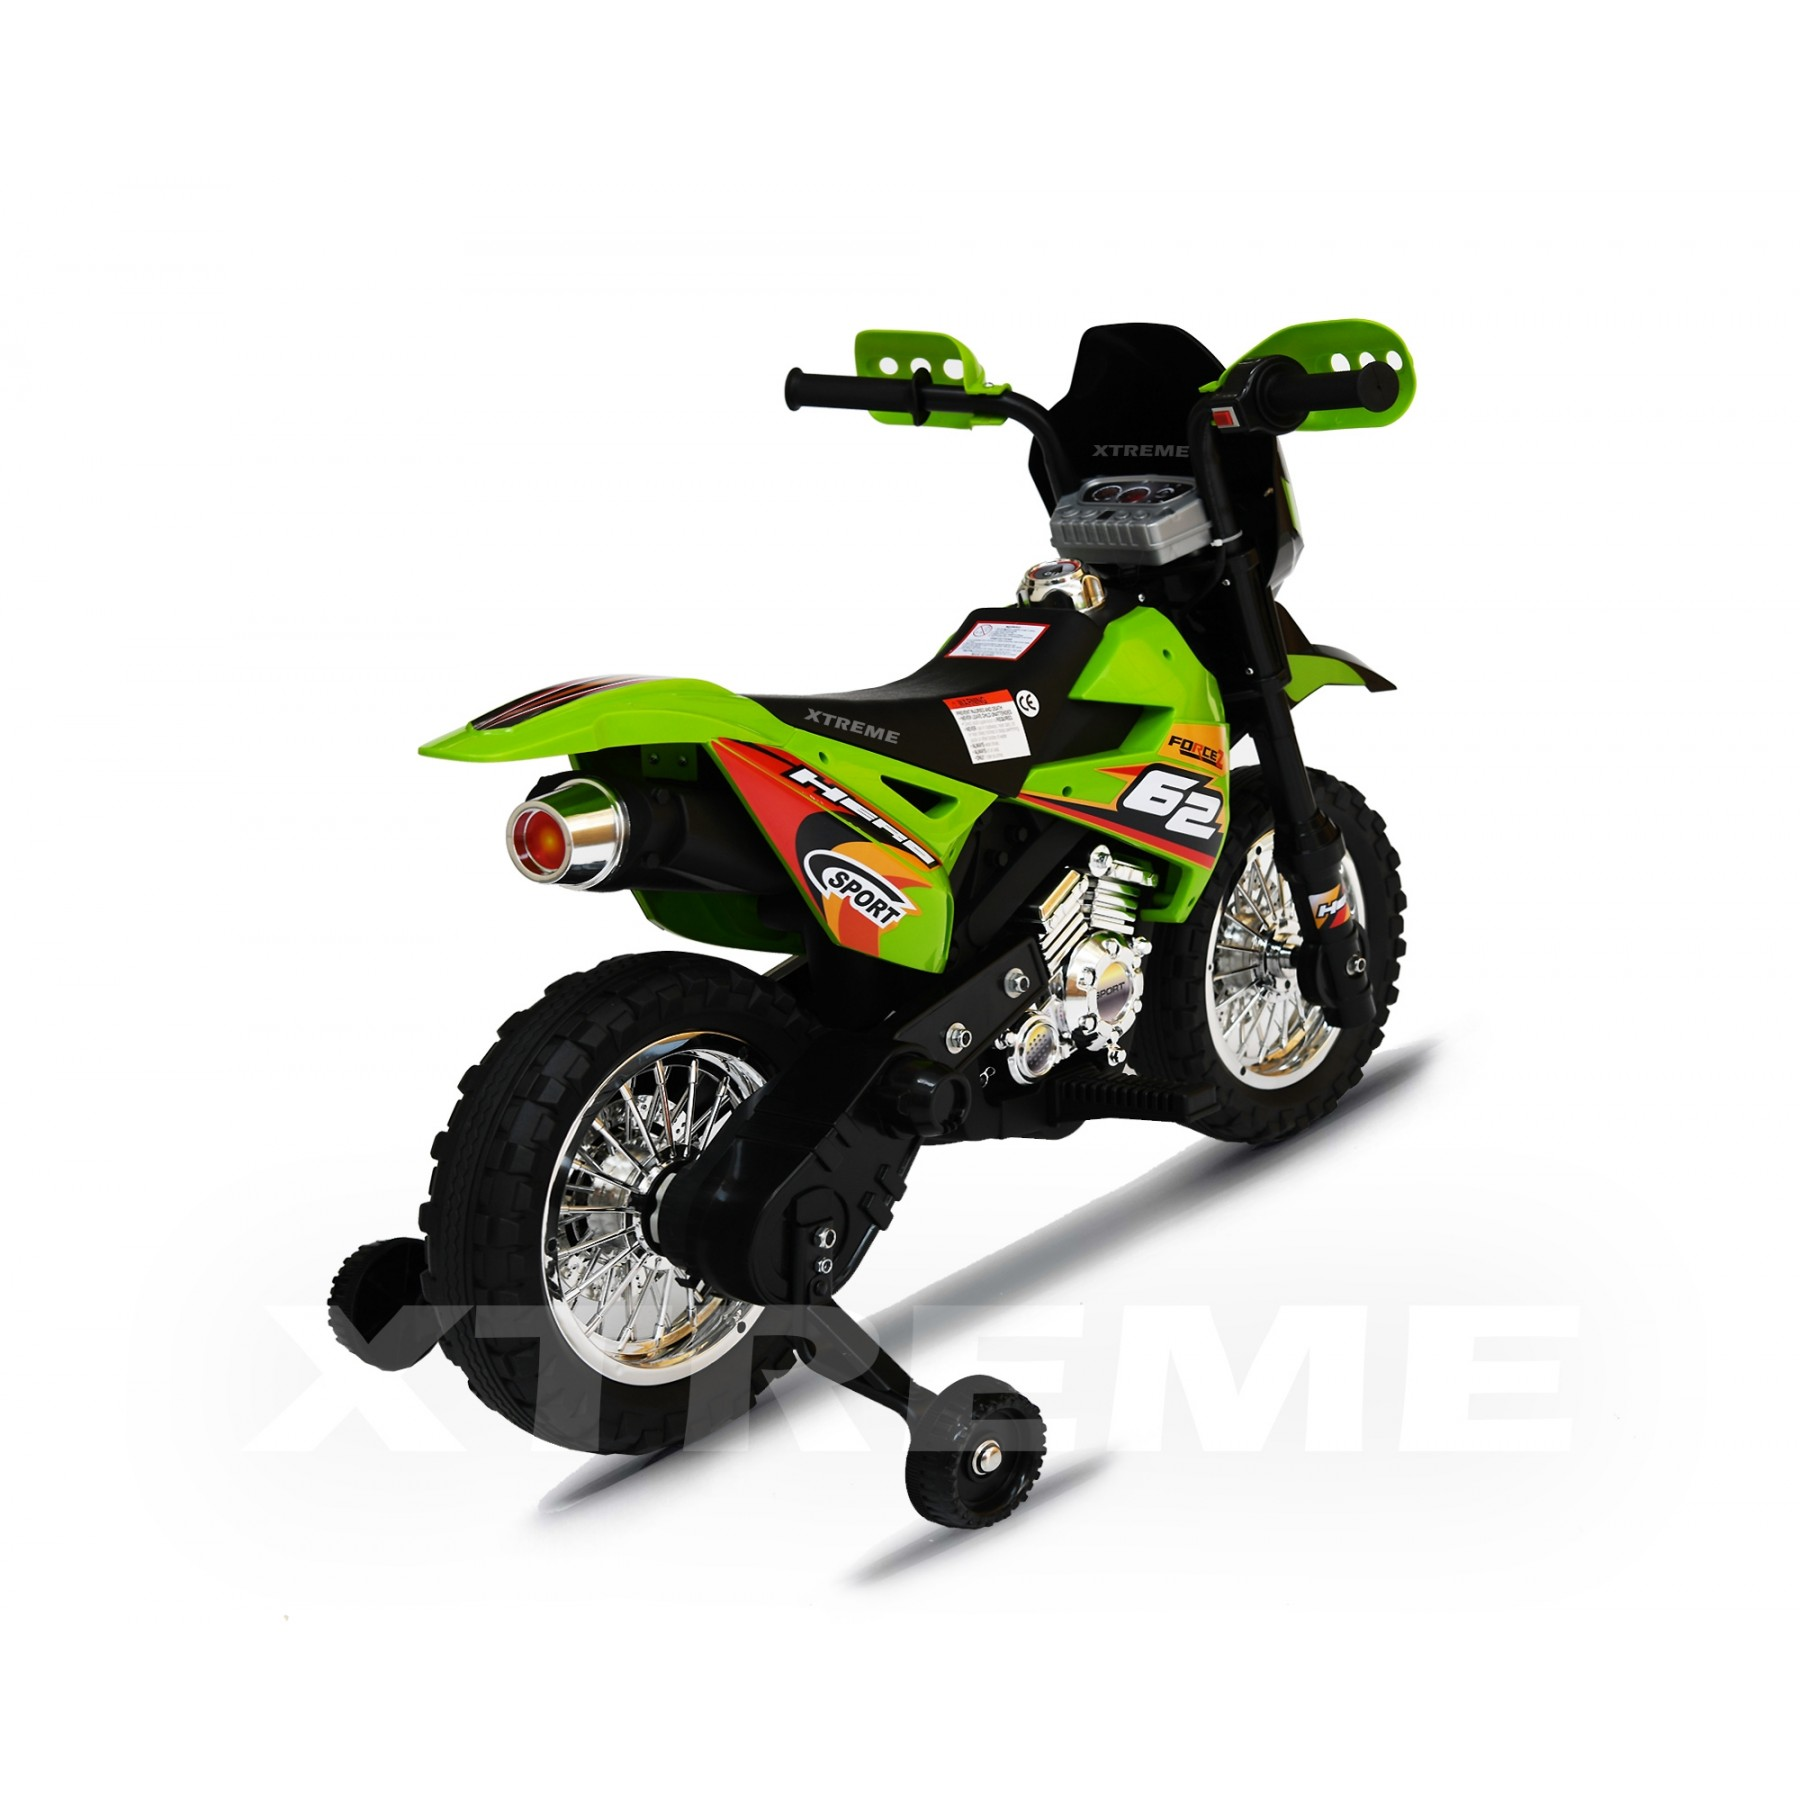 6v Xtreme Electric Scrambler Motorbike Ride on Car in Green